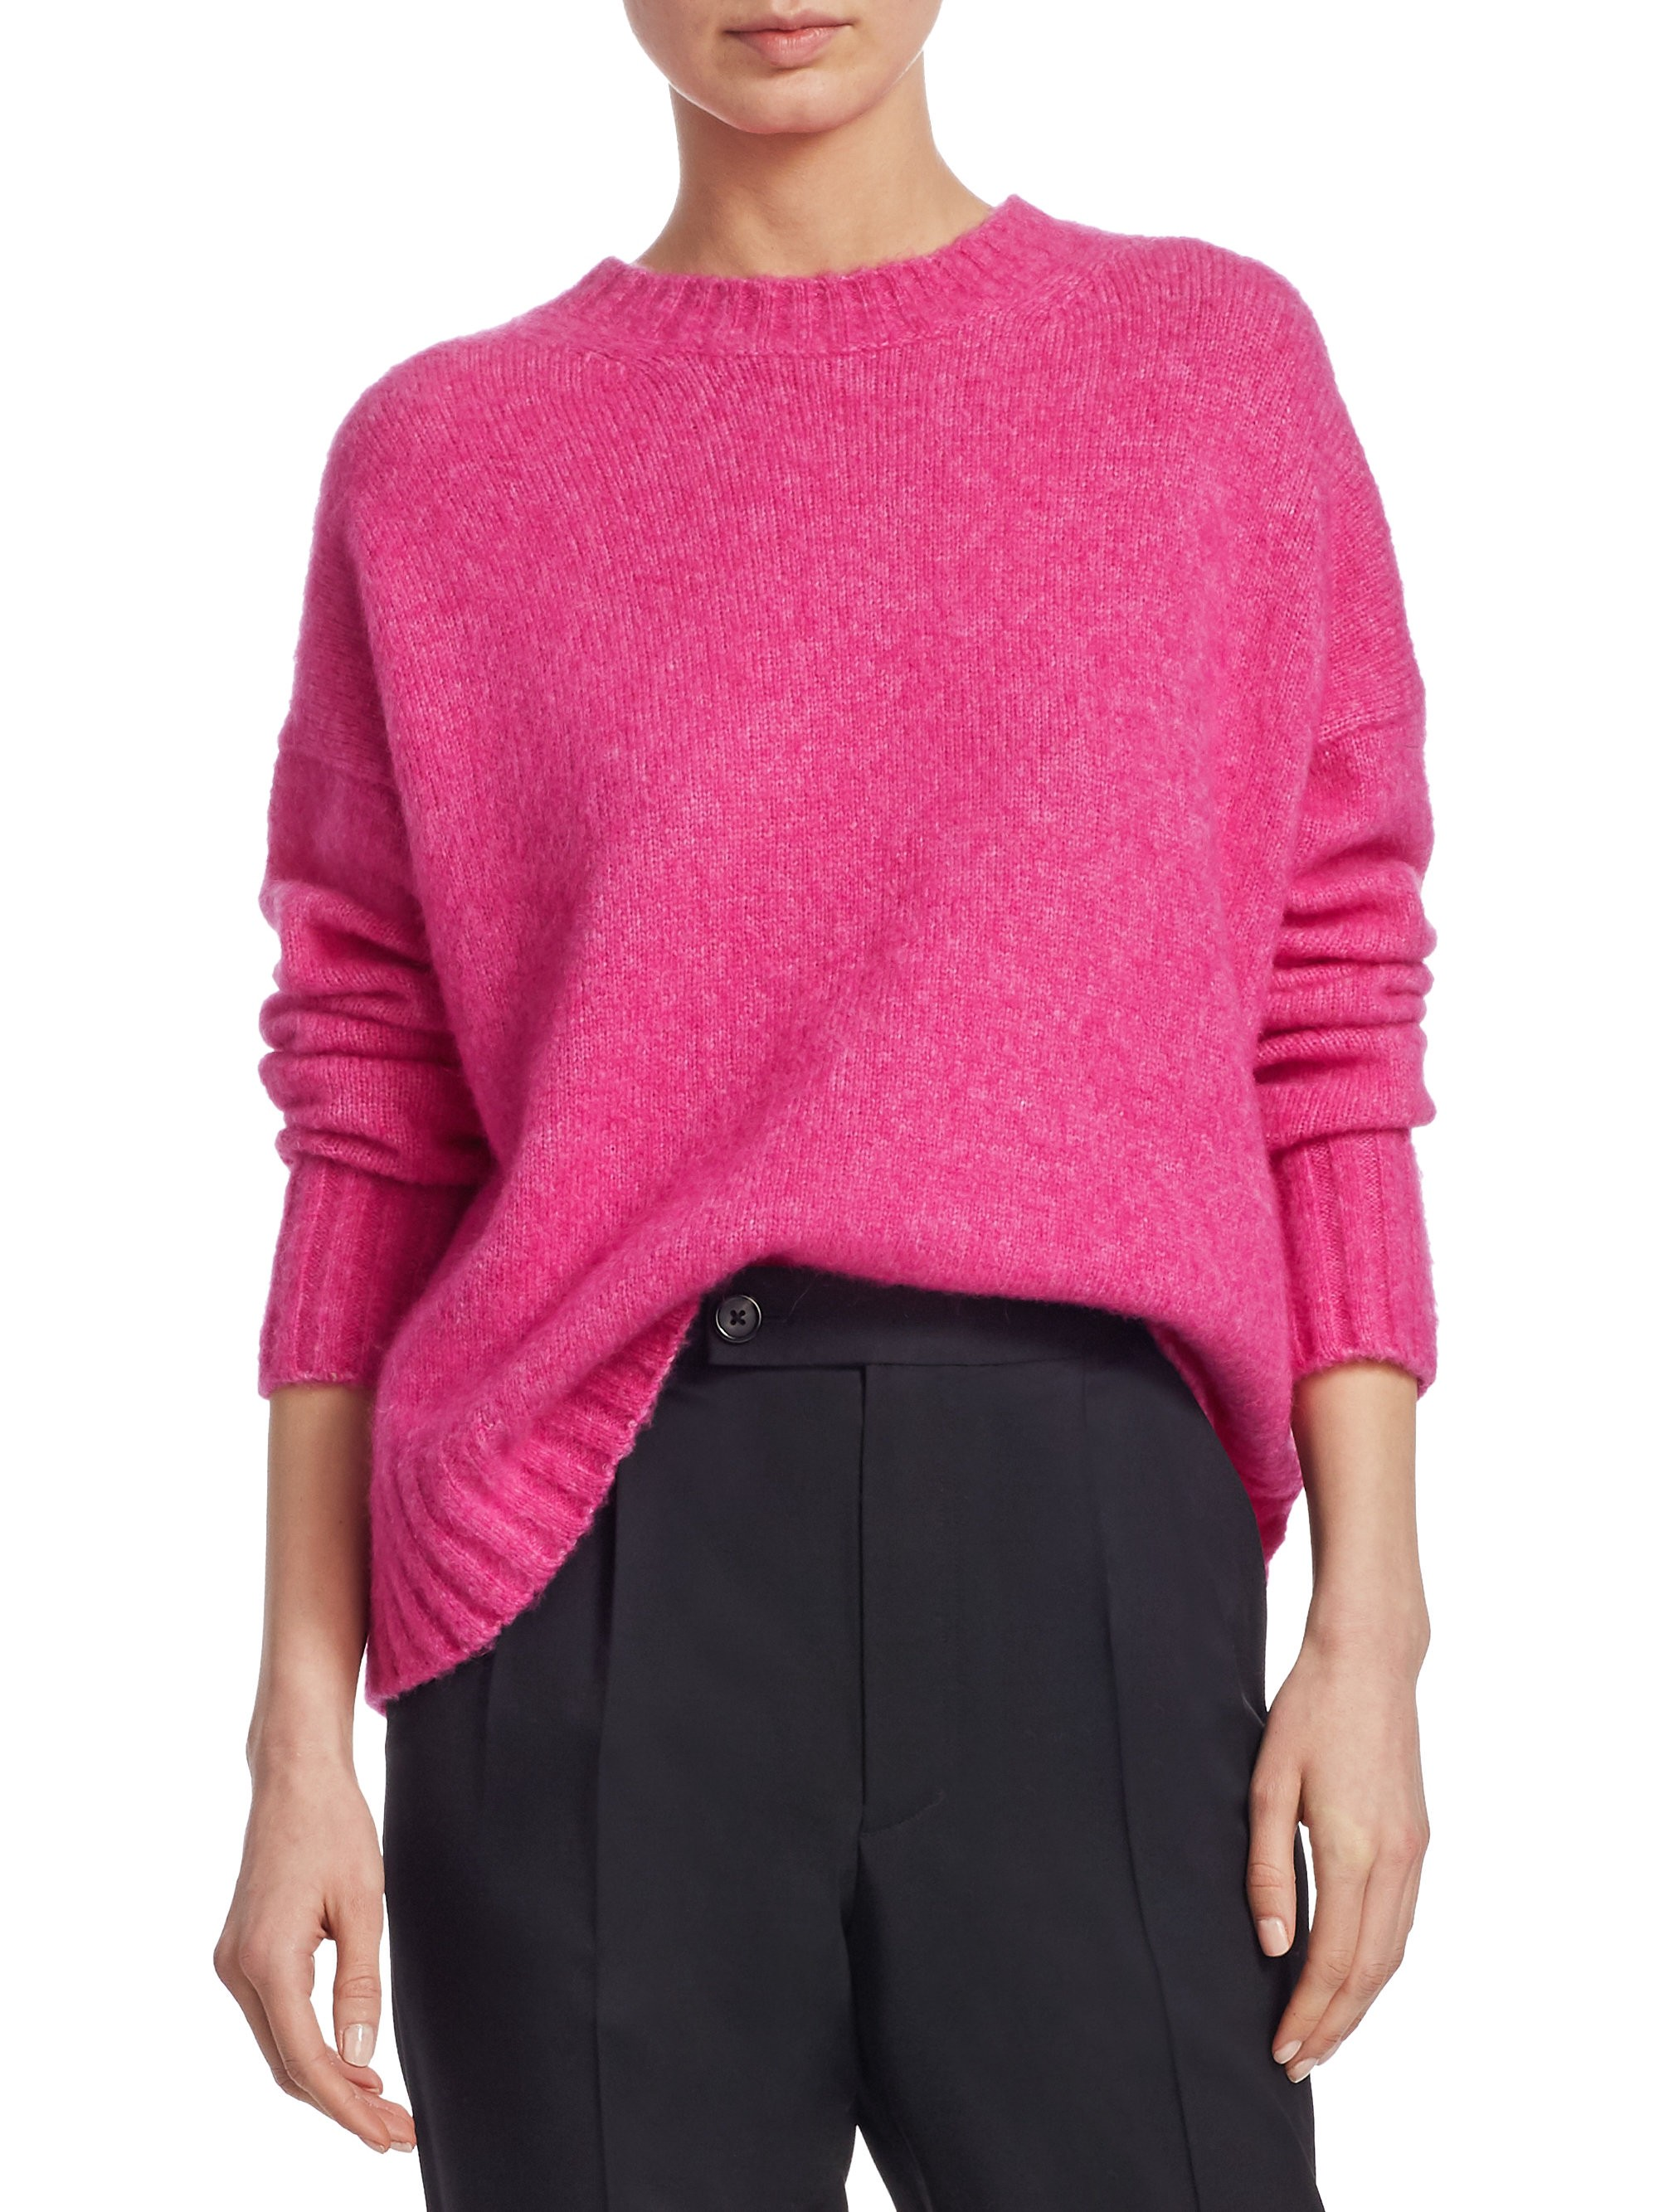 ef9a75f95d Helmut Lang Brushed Wool Crewneck Sweater - Gum X-Small